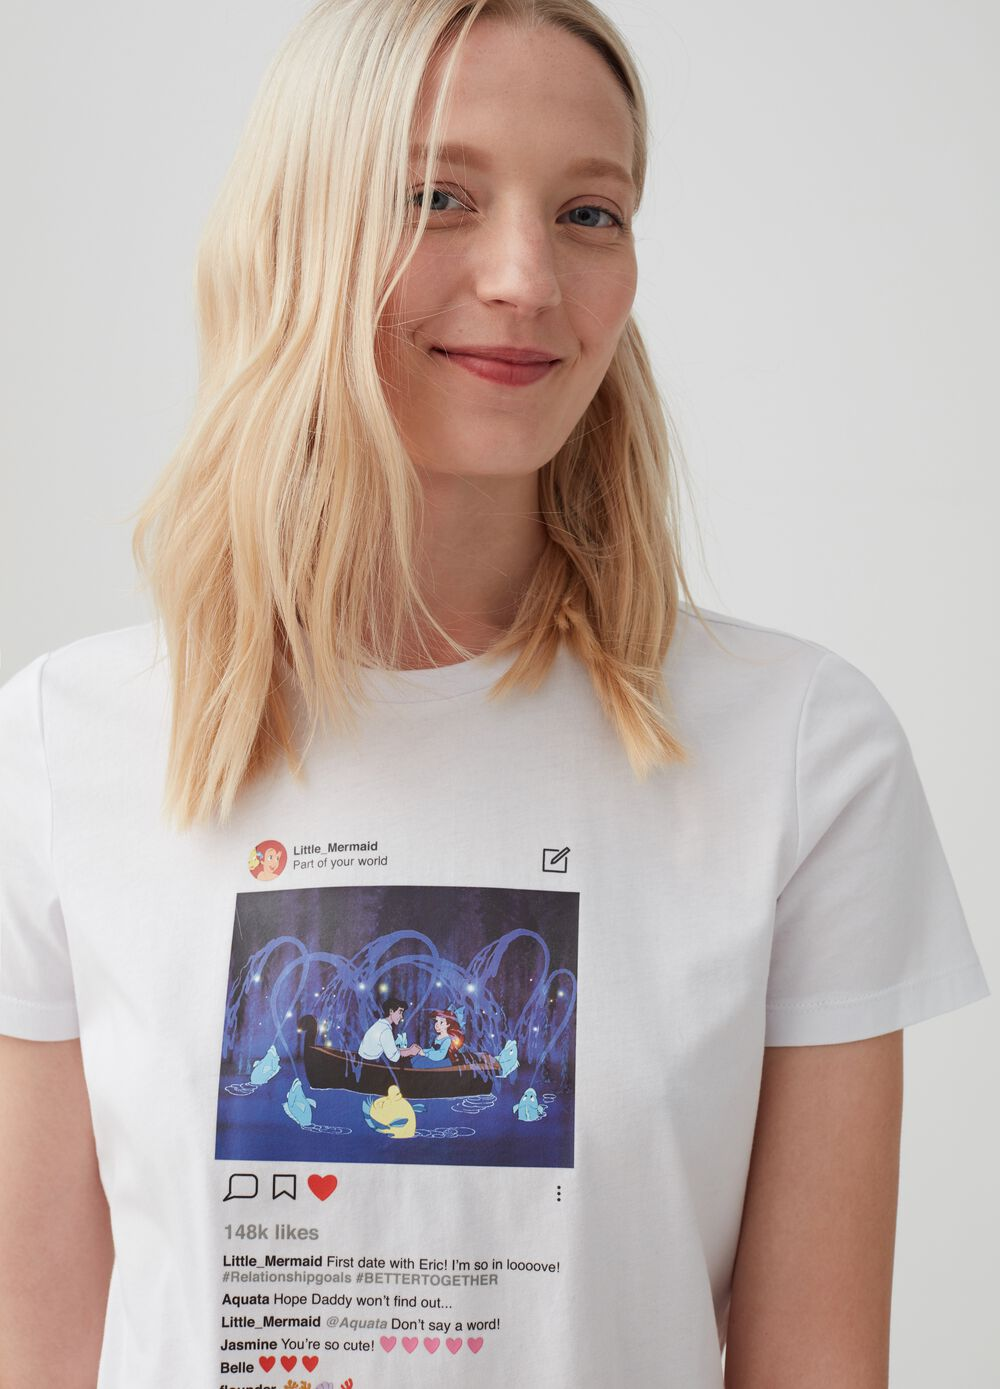 100% cotton T-shirt with The Little Mermaid print